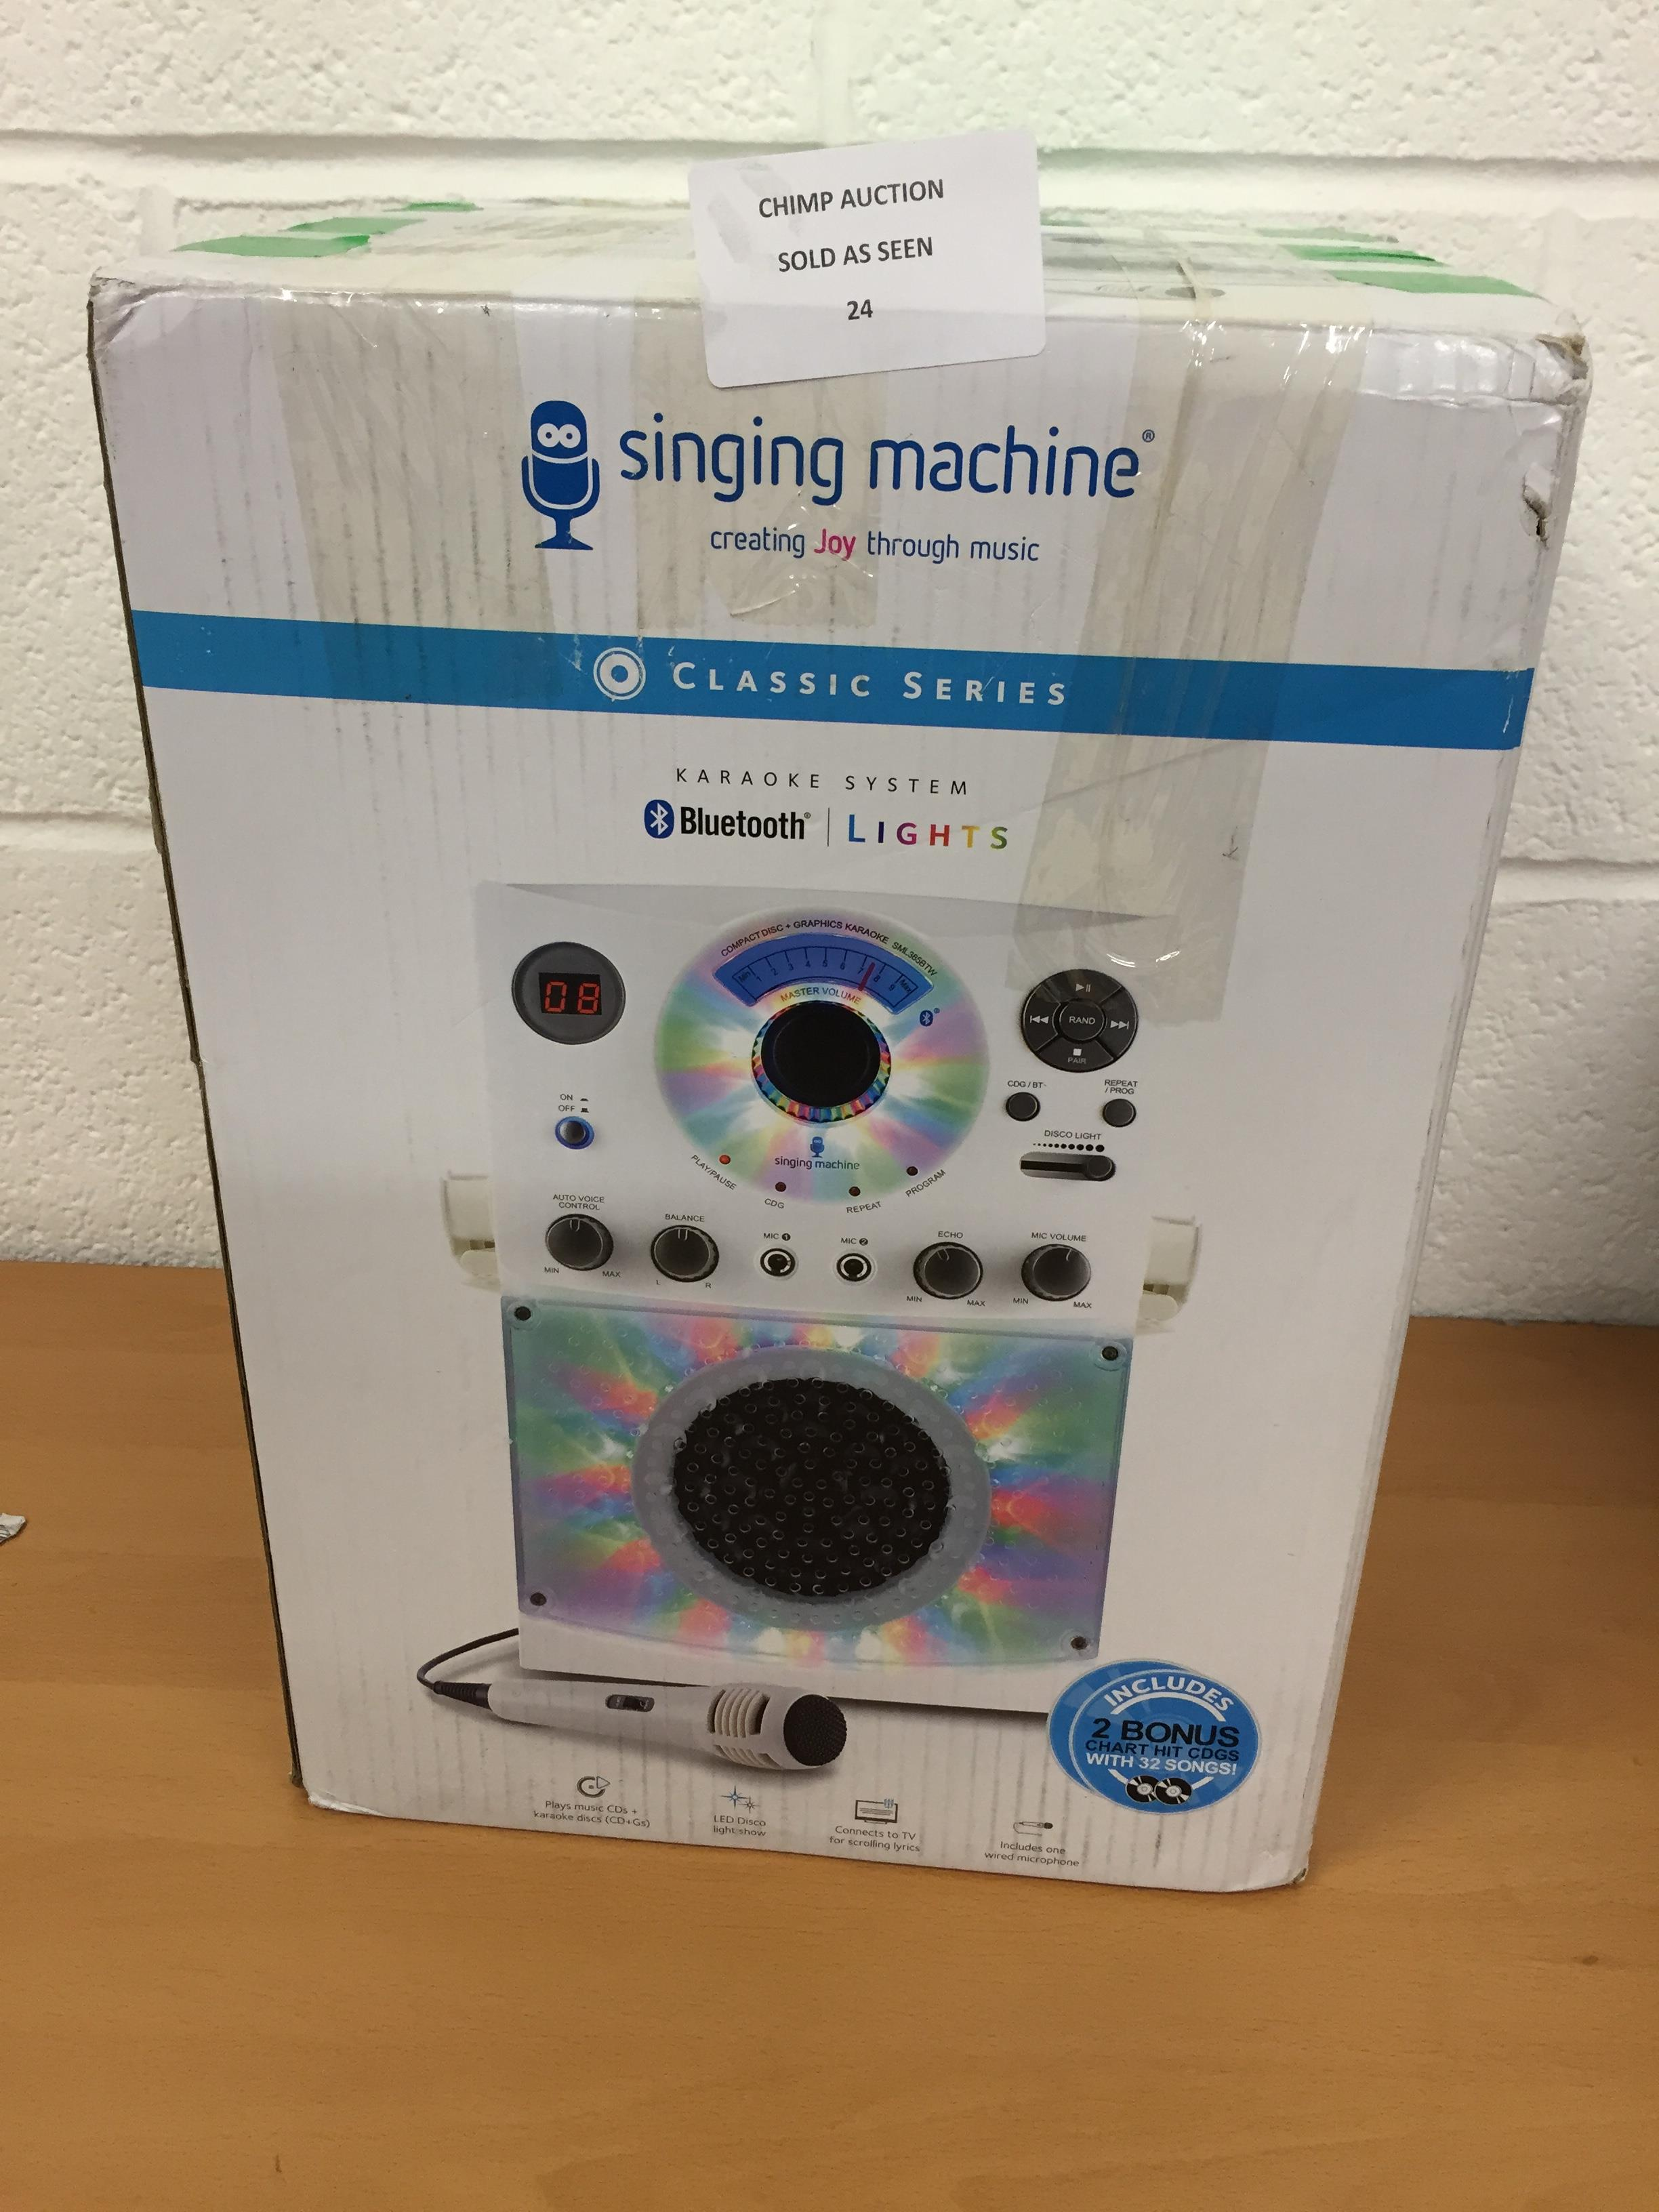 Lot 24 - Singing Machine Classic series Bluetooth karaoke system